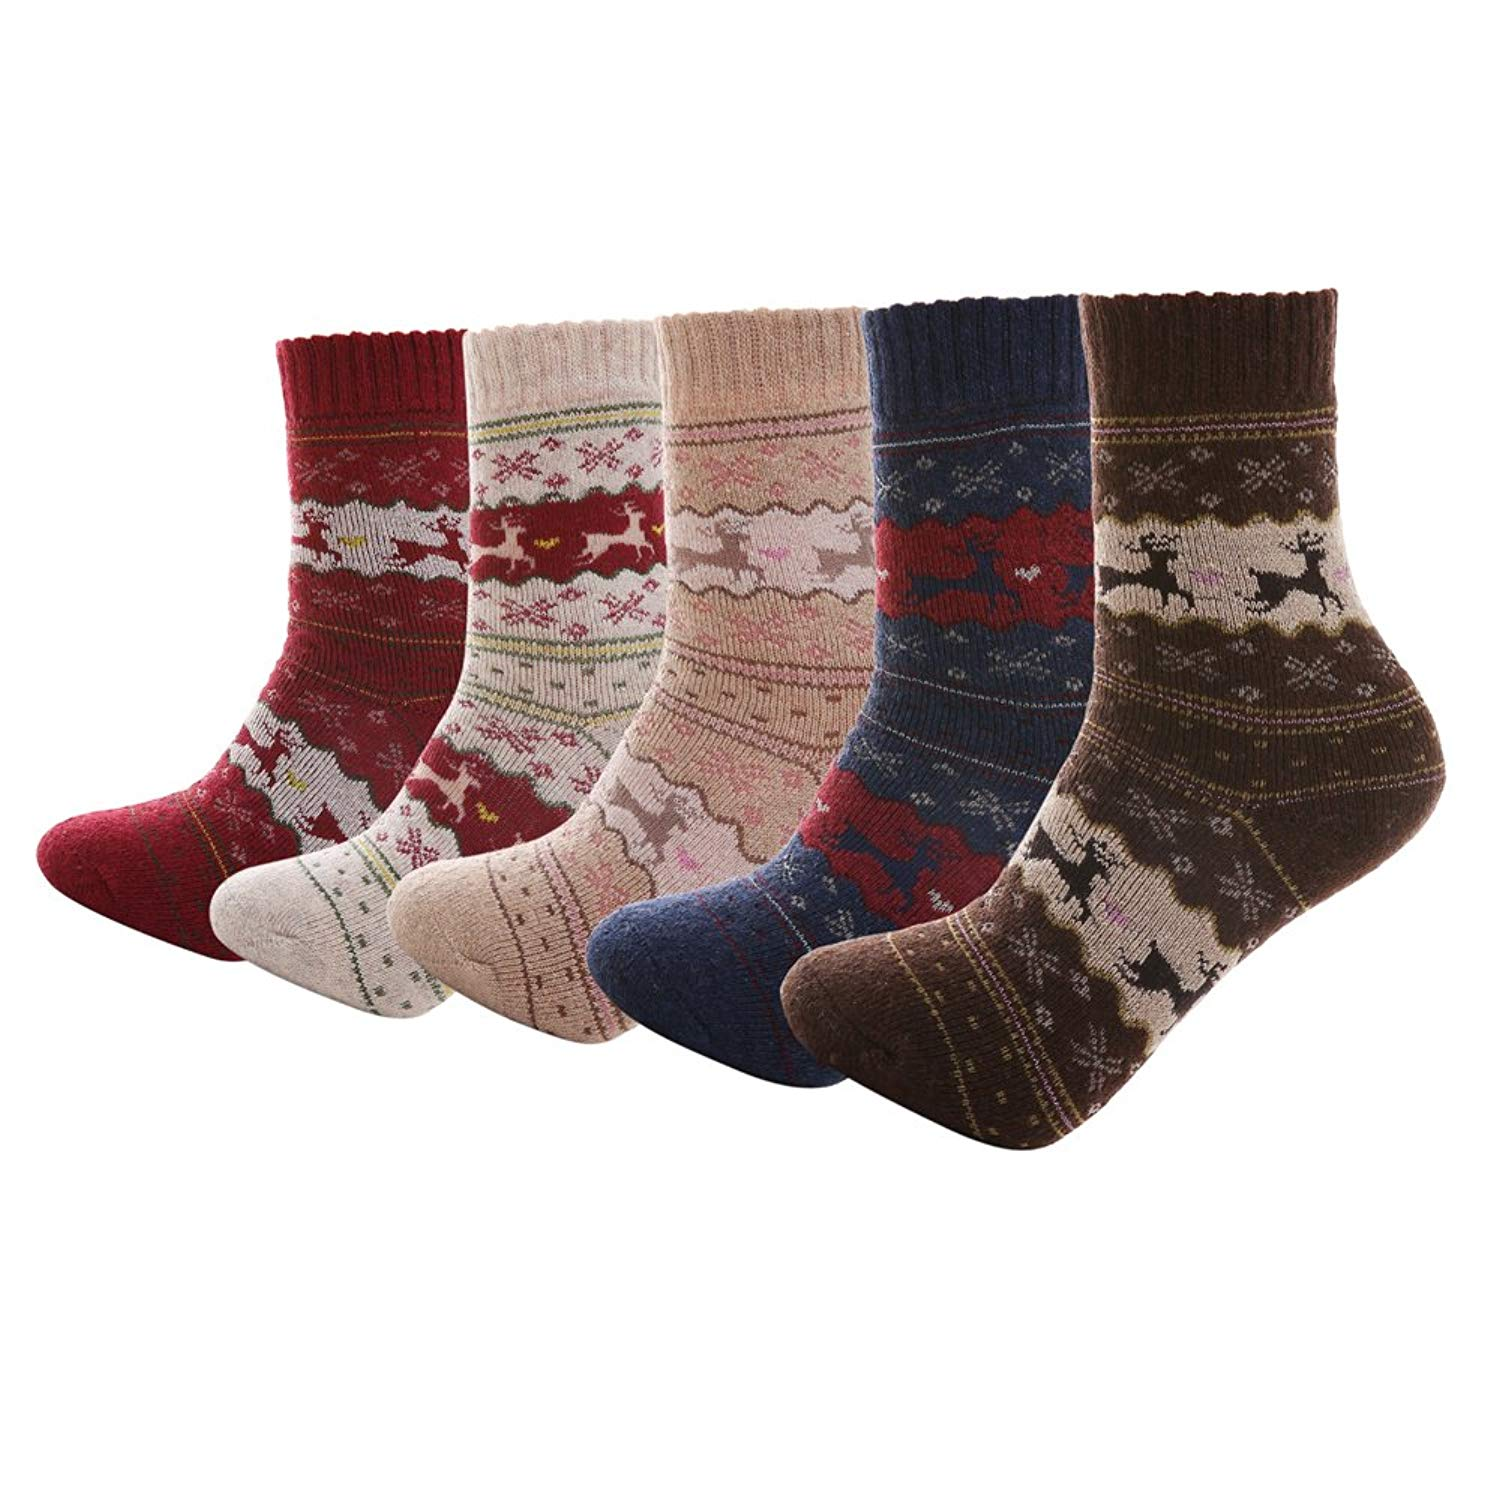 cf5b95c102335 Get Quotations · Aeakey 5 Pairs Women's Crew Socks Thick Knit Wool Cozy  Crew Socks Vintage Style Cute Funny